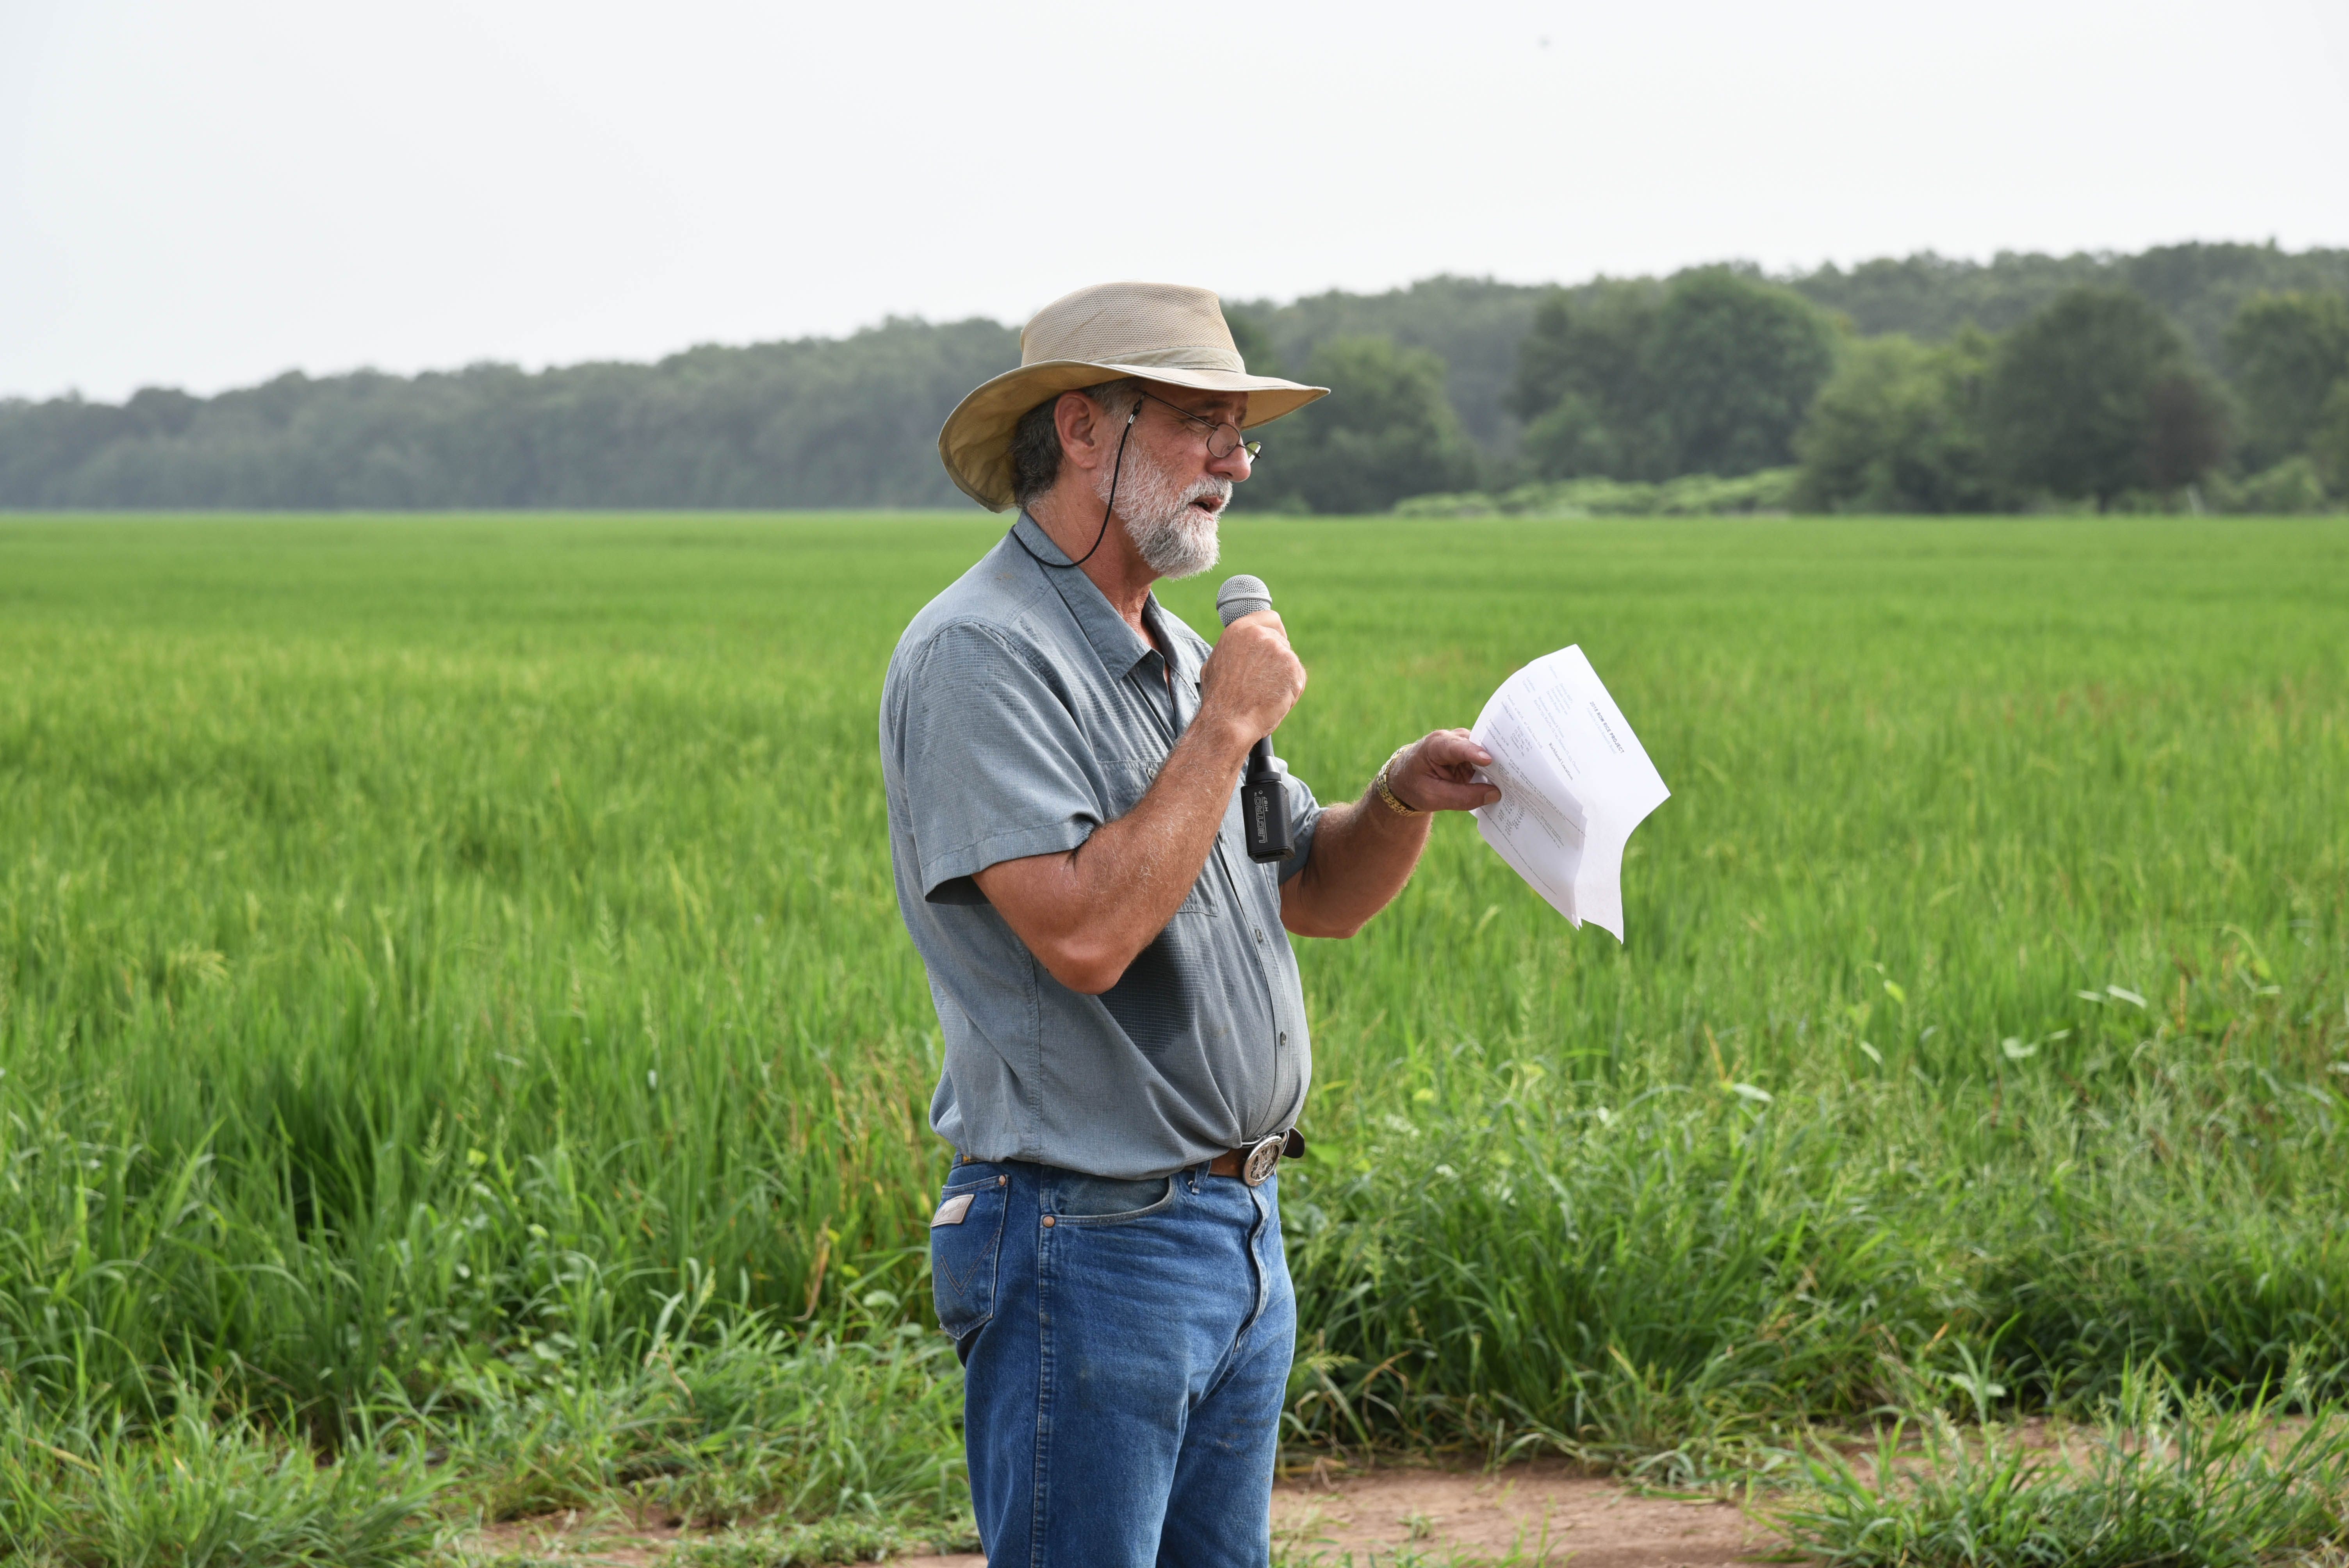 Keith Collins at row rice field day.jpg thumbnail